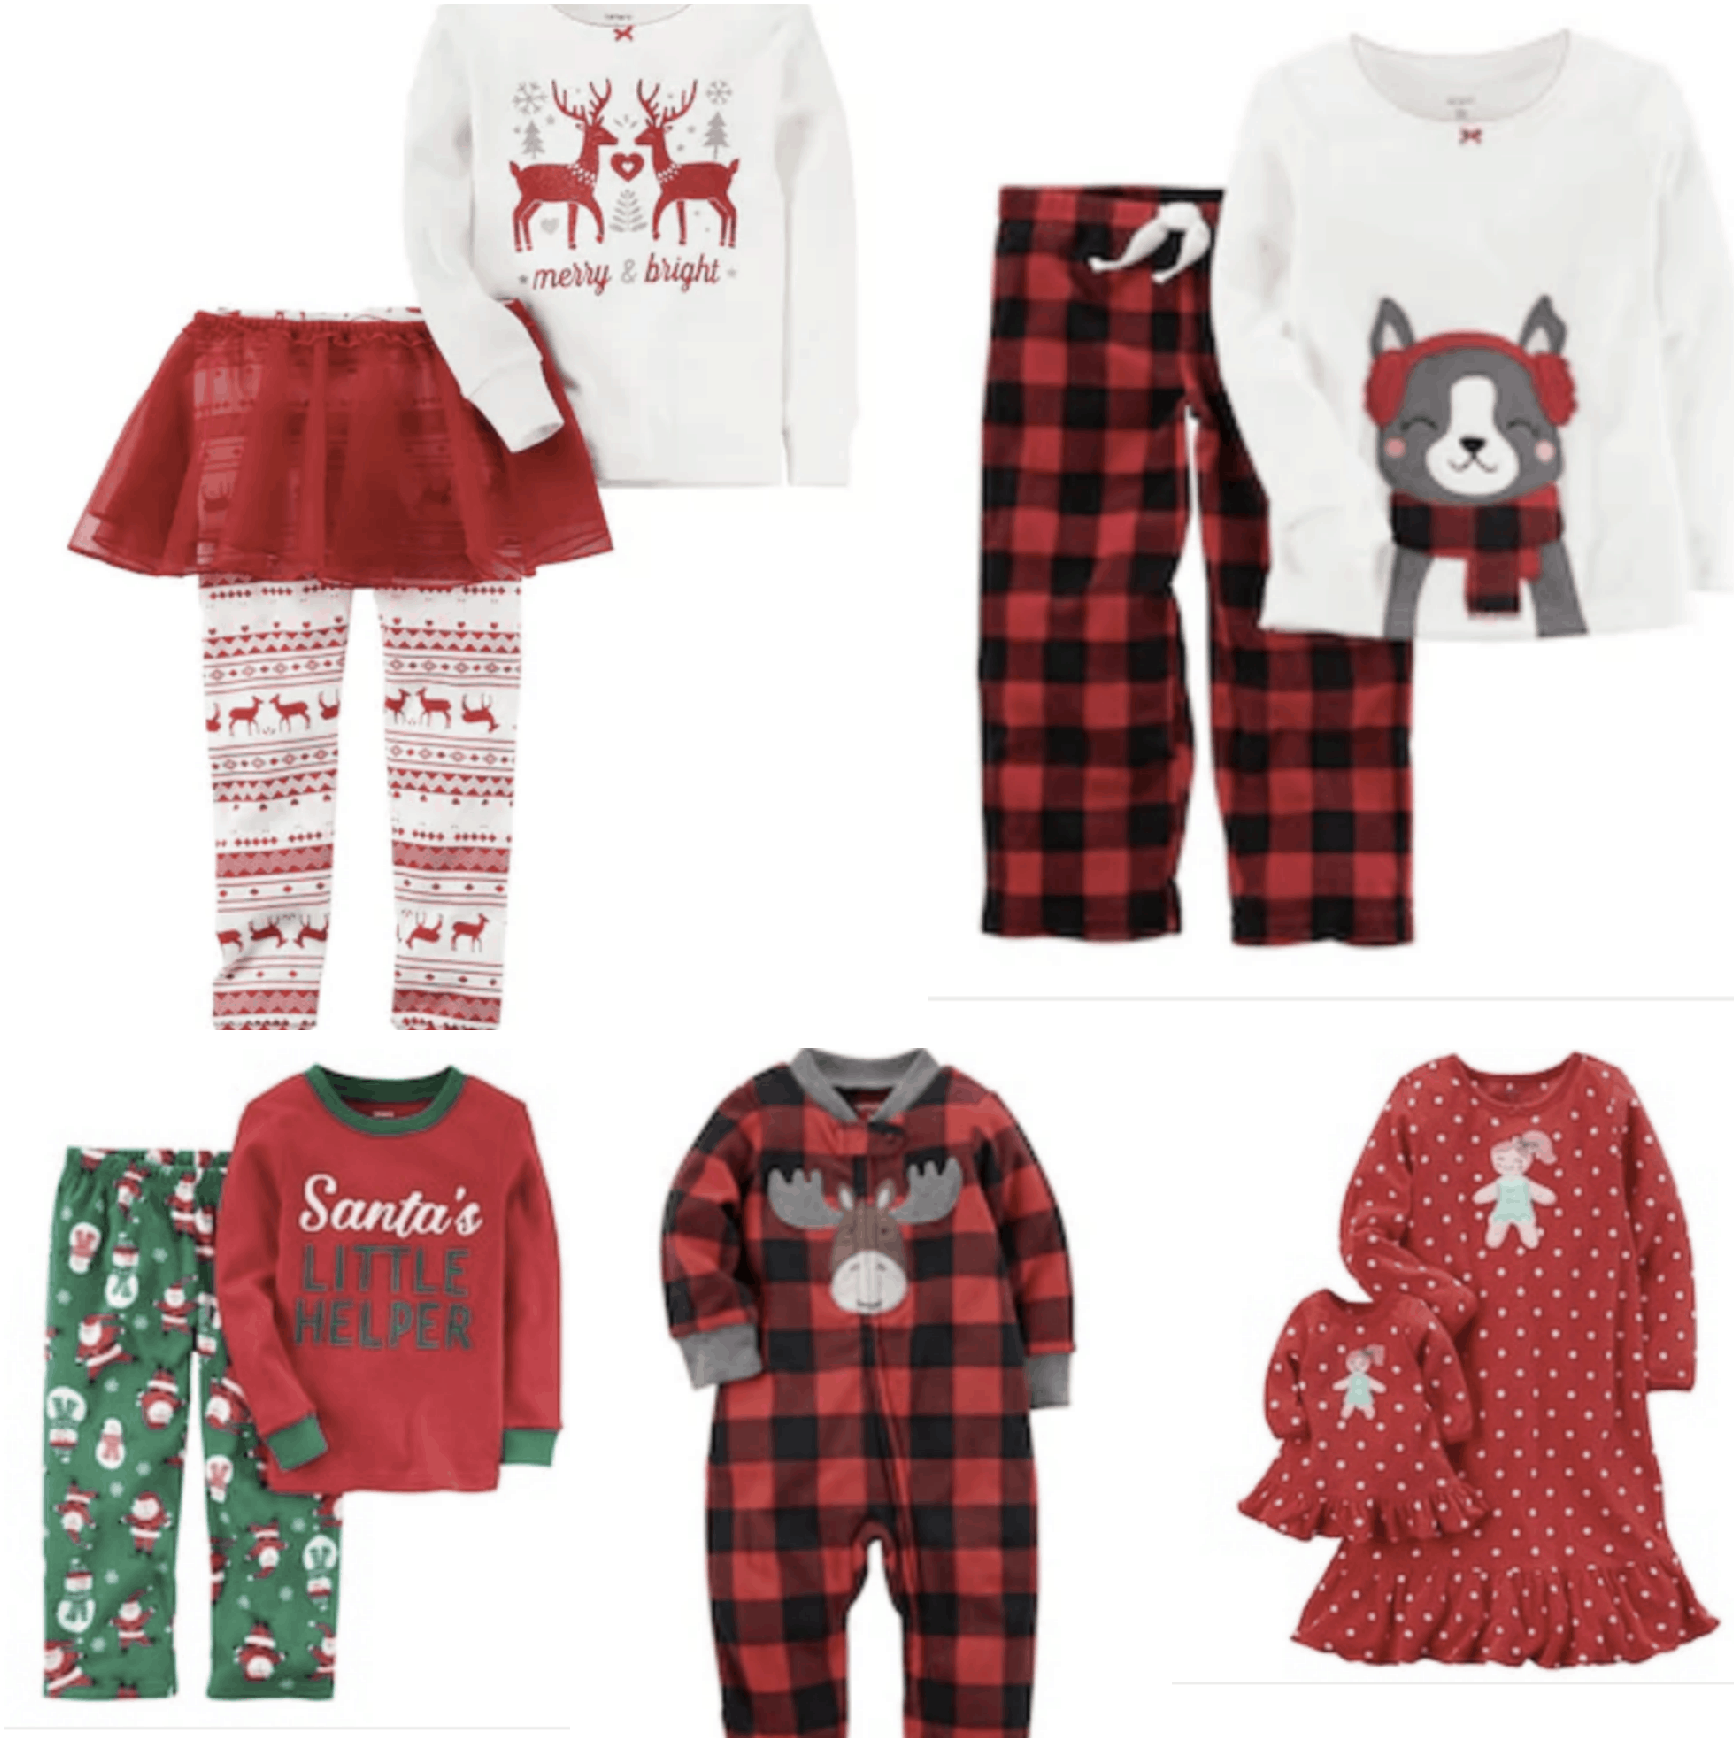 Kohls Black Friday Sale - PJs for The Family! | Passionate Penny Pincher